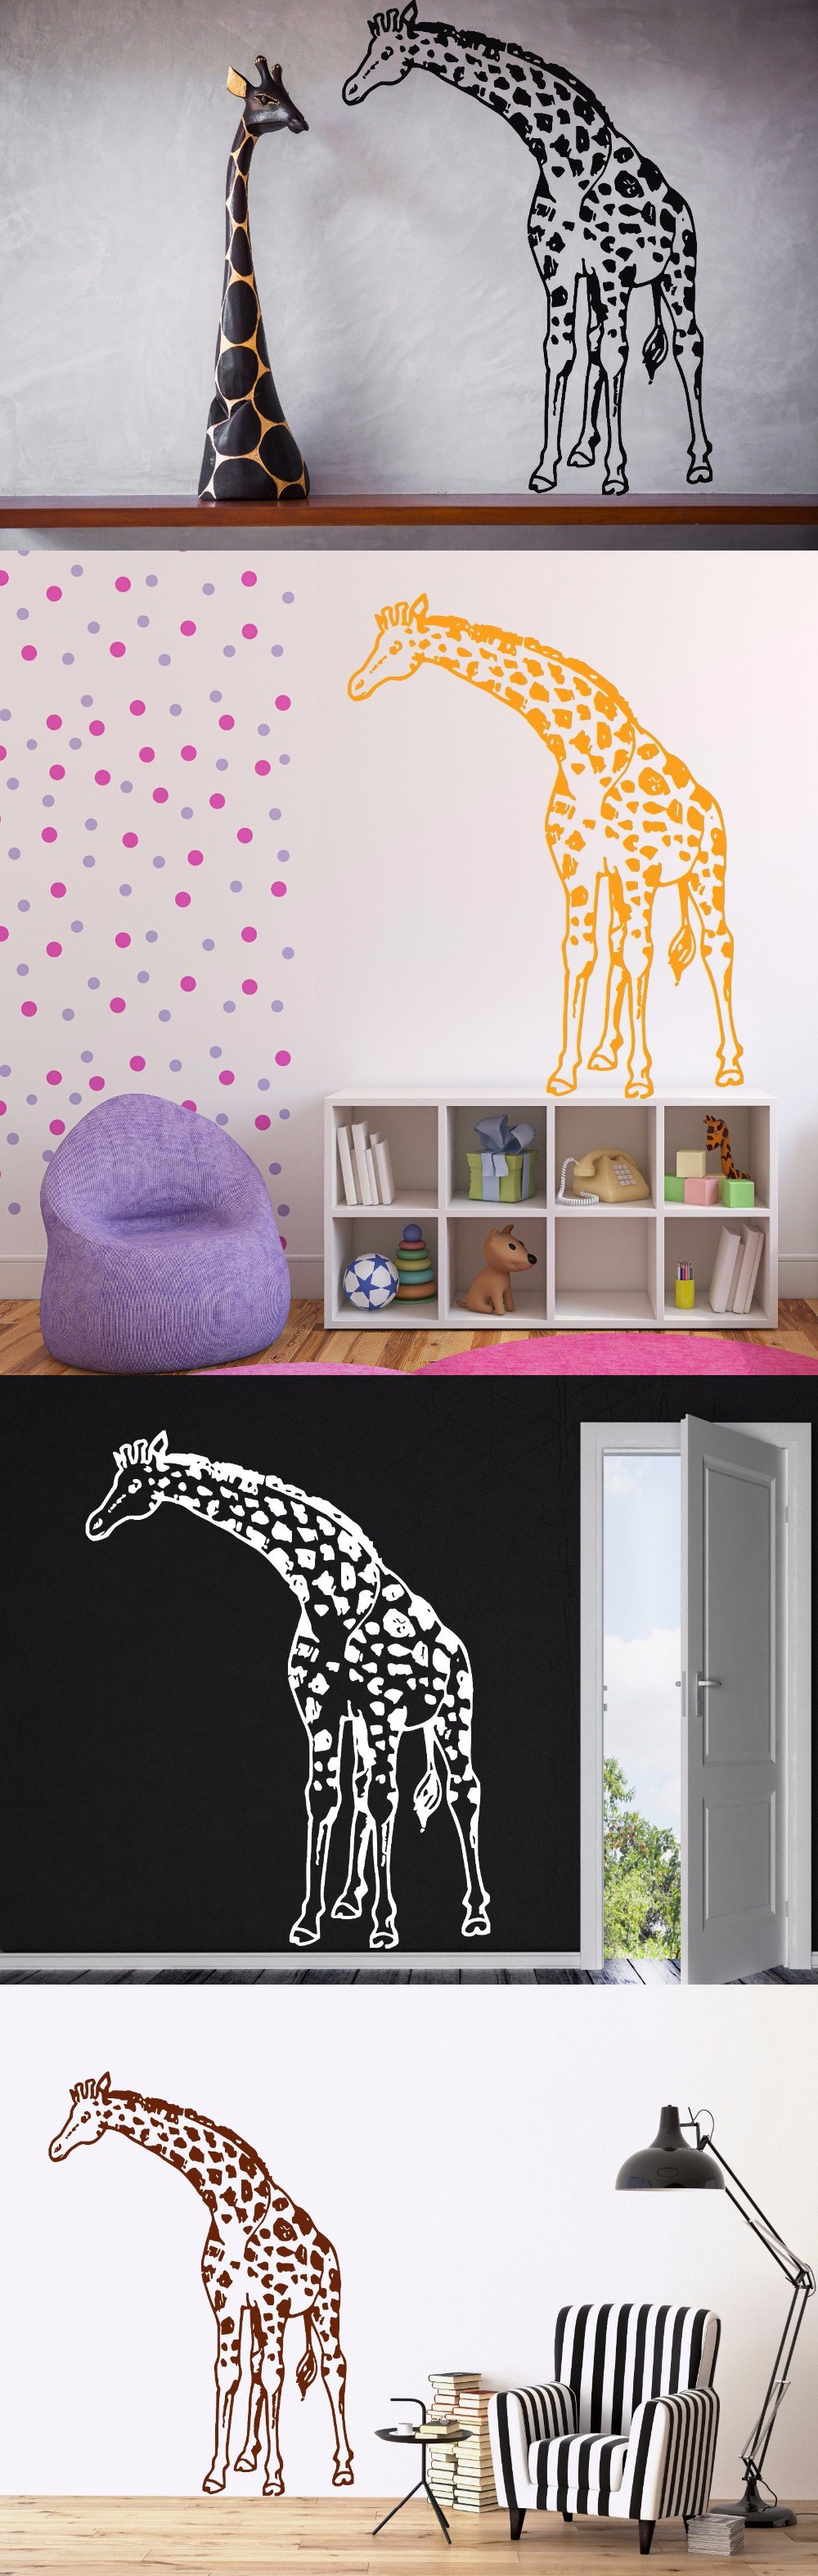 Giraffe Vinyl Wall Decal Animals Jungle Safari African Animal - Vinyl wall decals animals